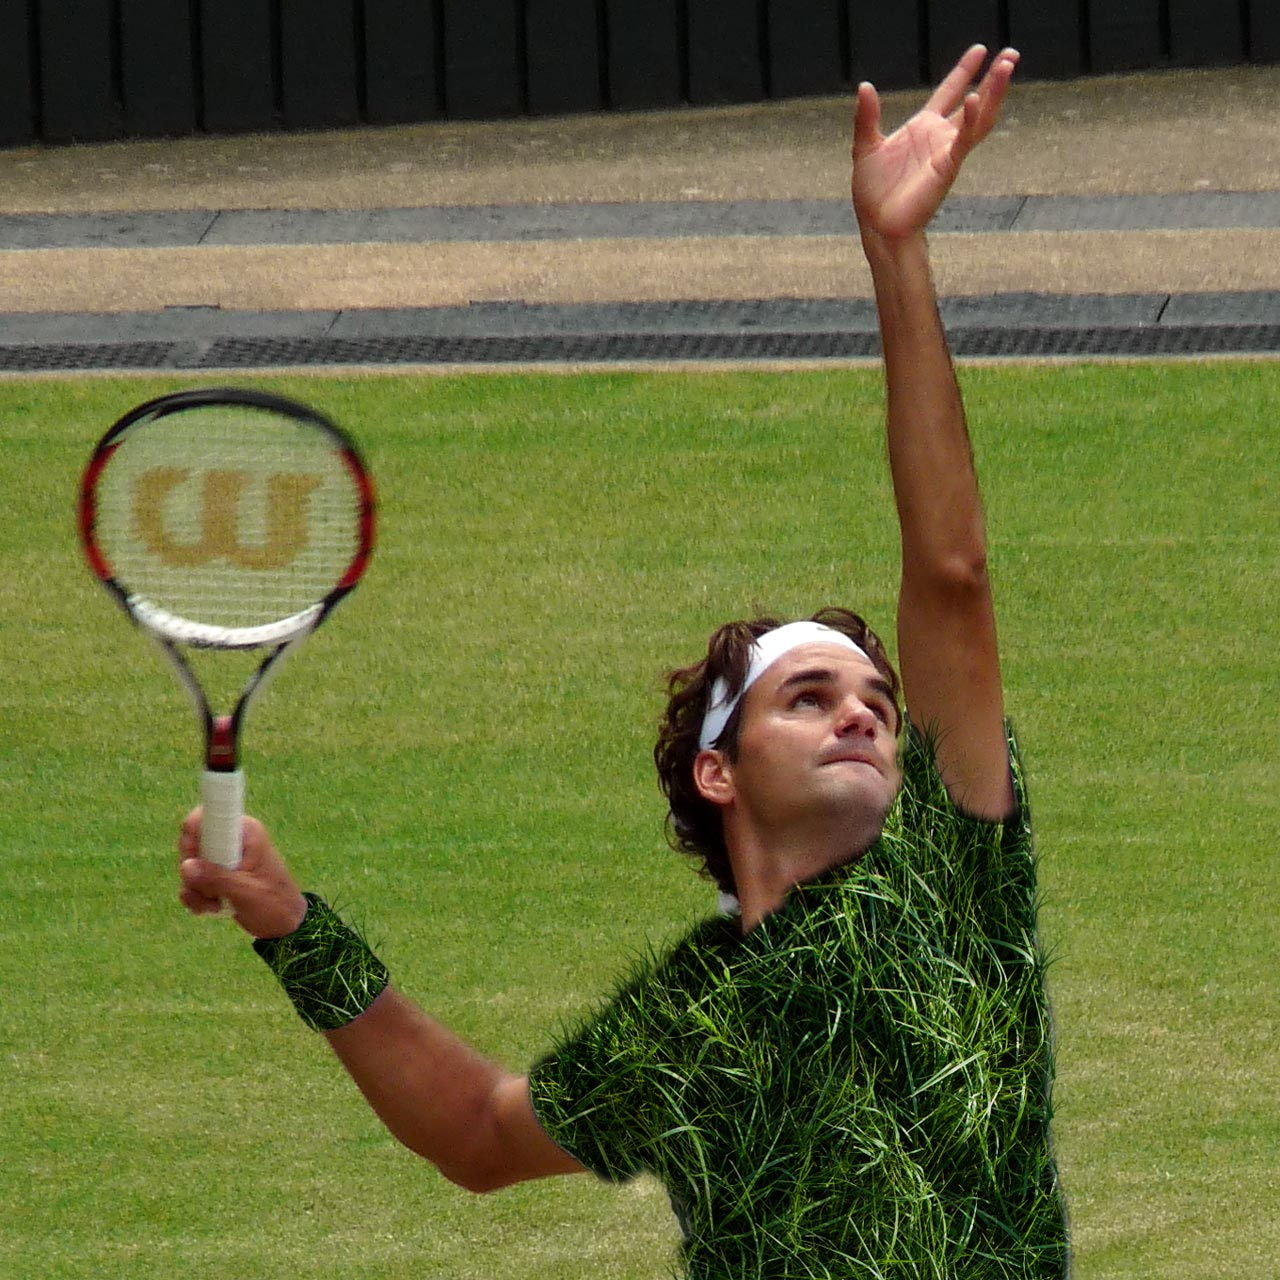 Roger Federer in grass attire.